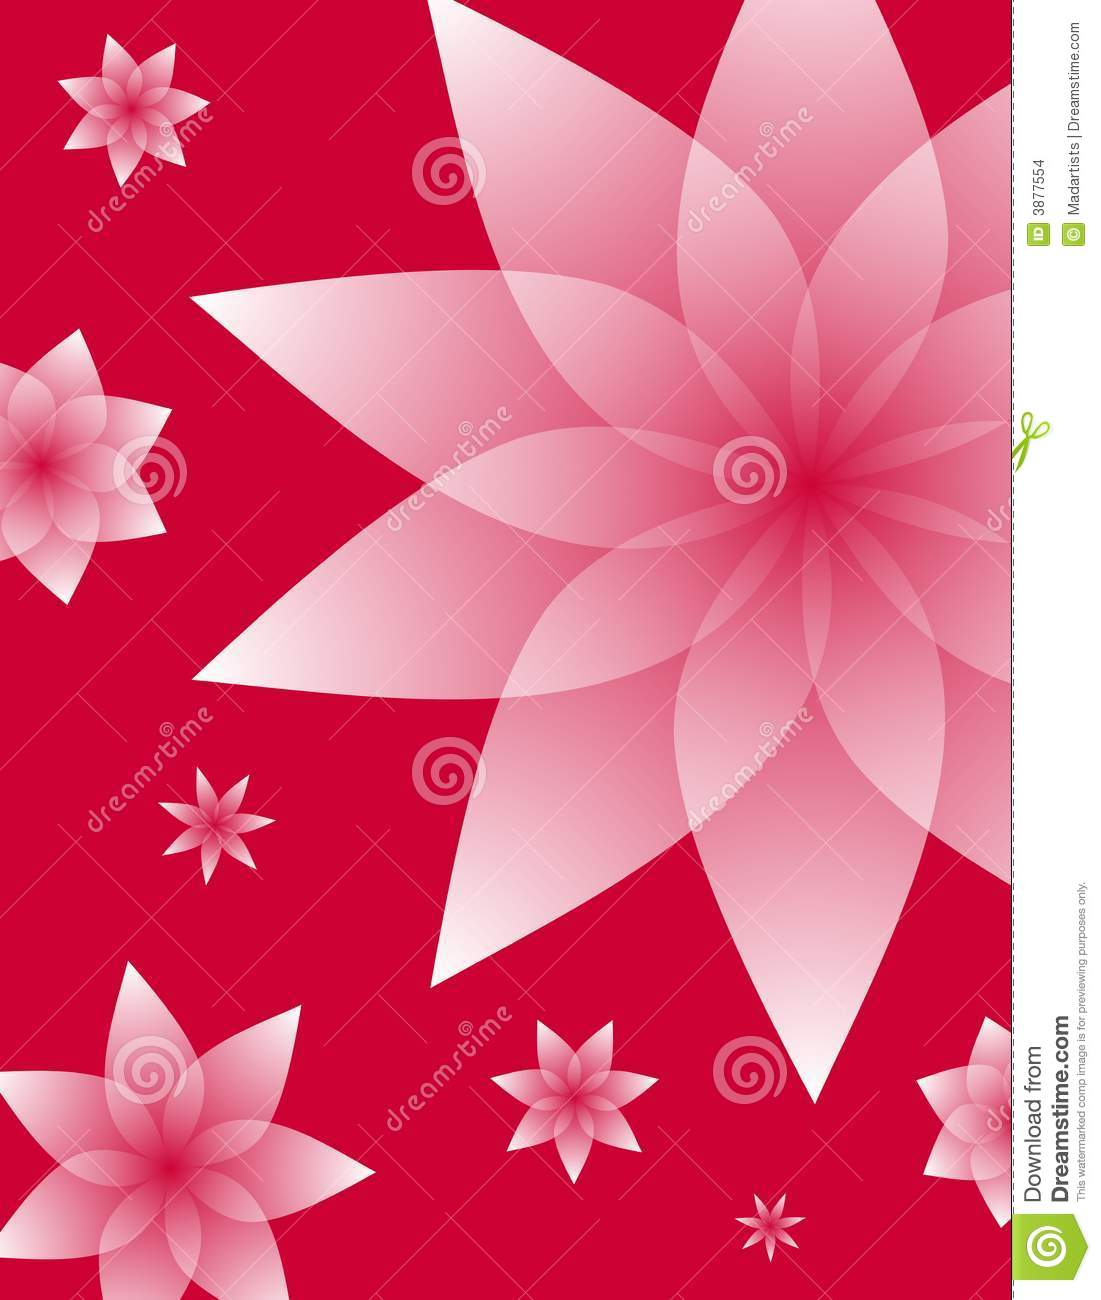 Pink Floral Designs On Red Background Stock Images Image